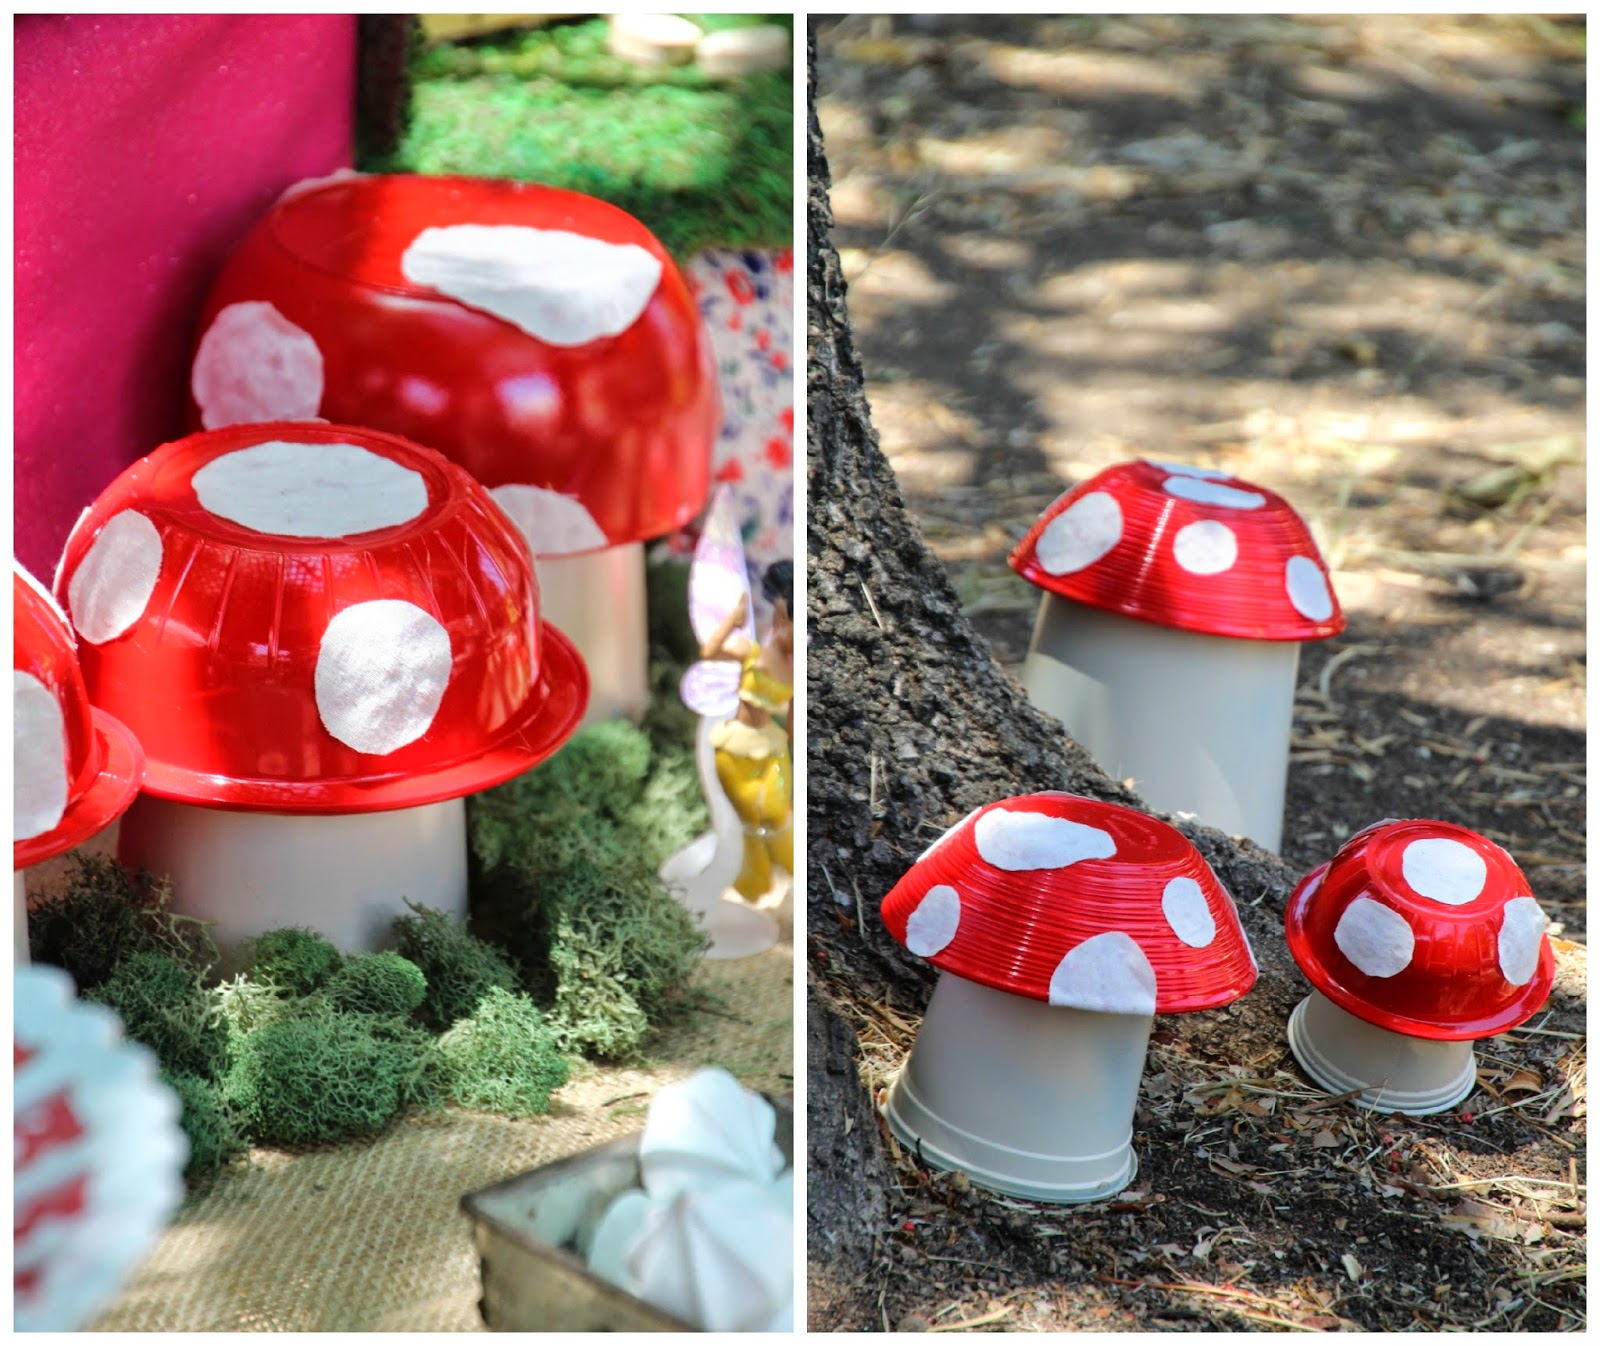 how to tell mushrooms from toadstools